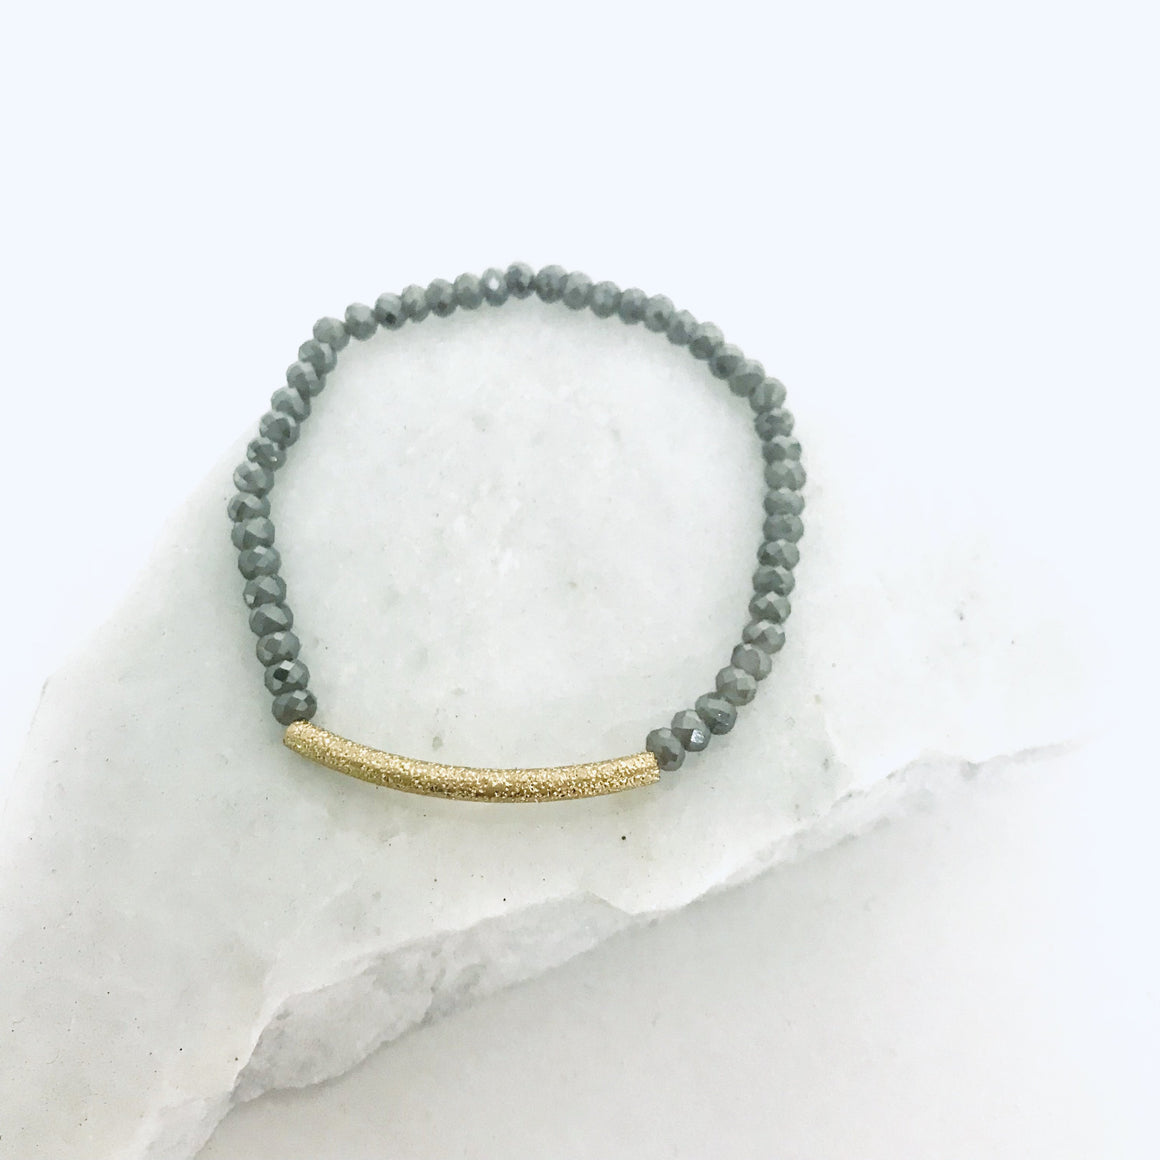 Down to Earth Bracelet - Dainty Hooligan